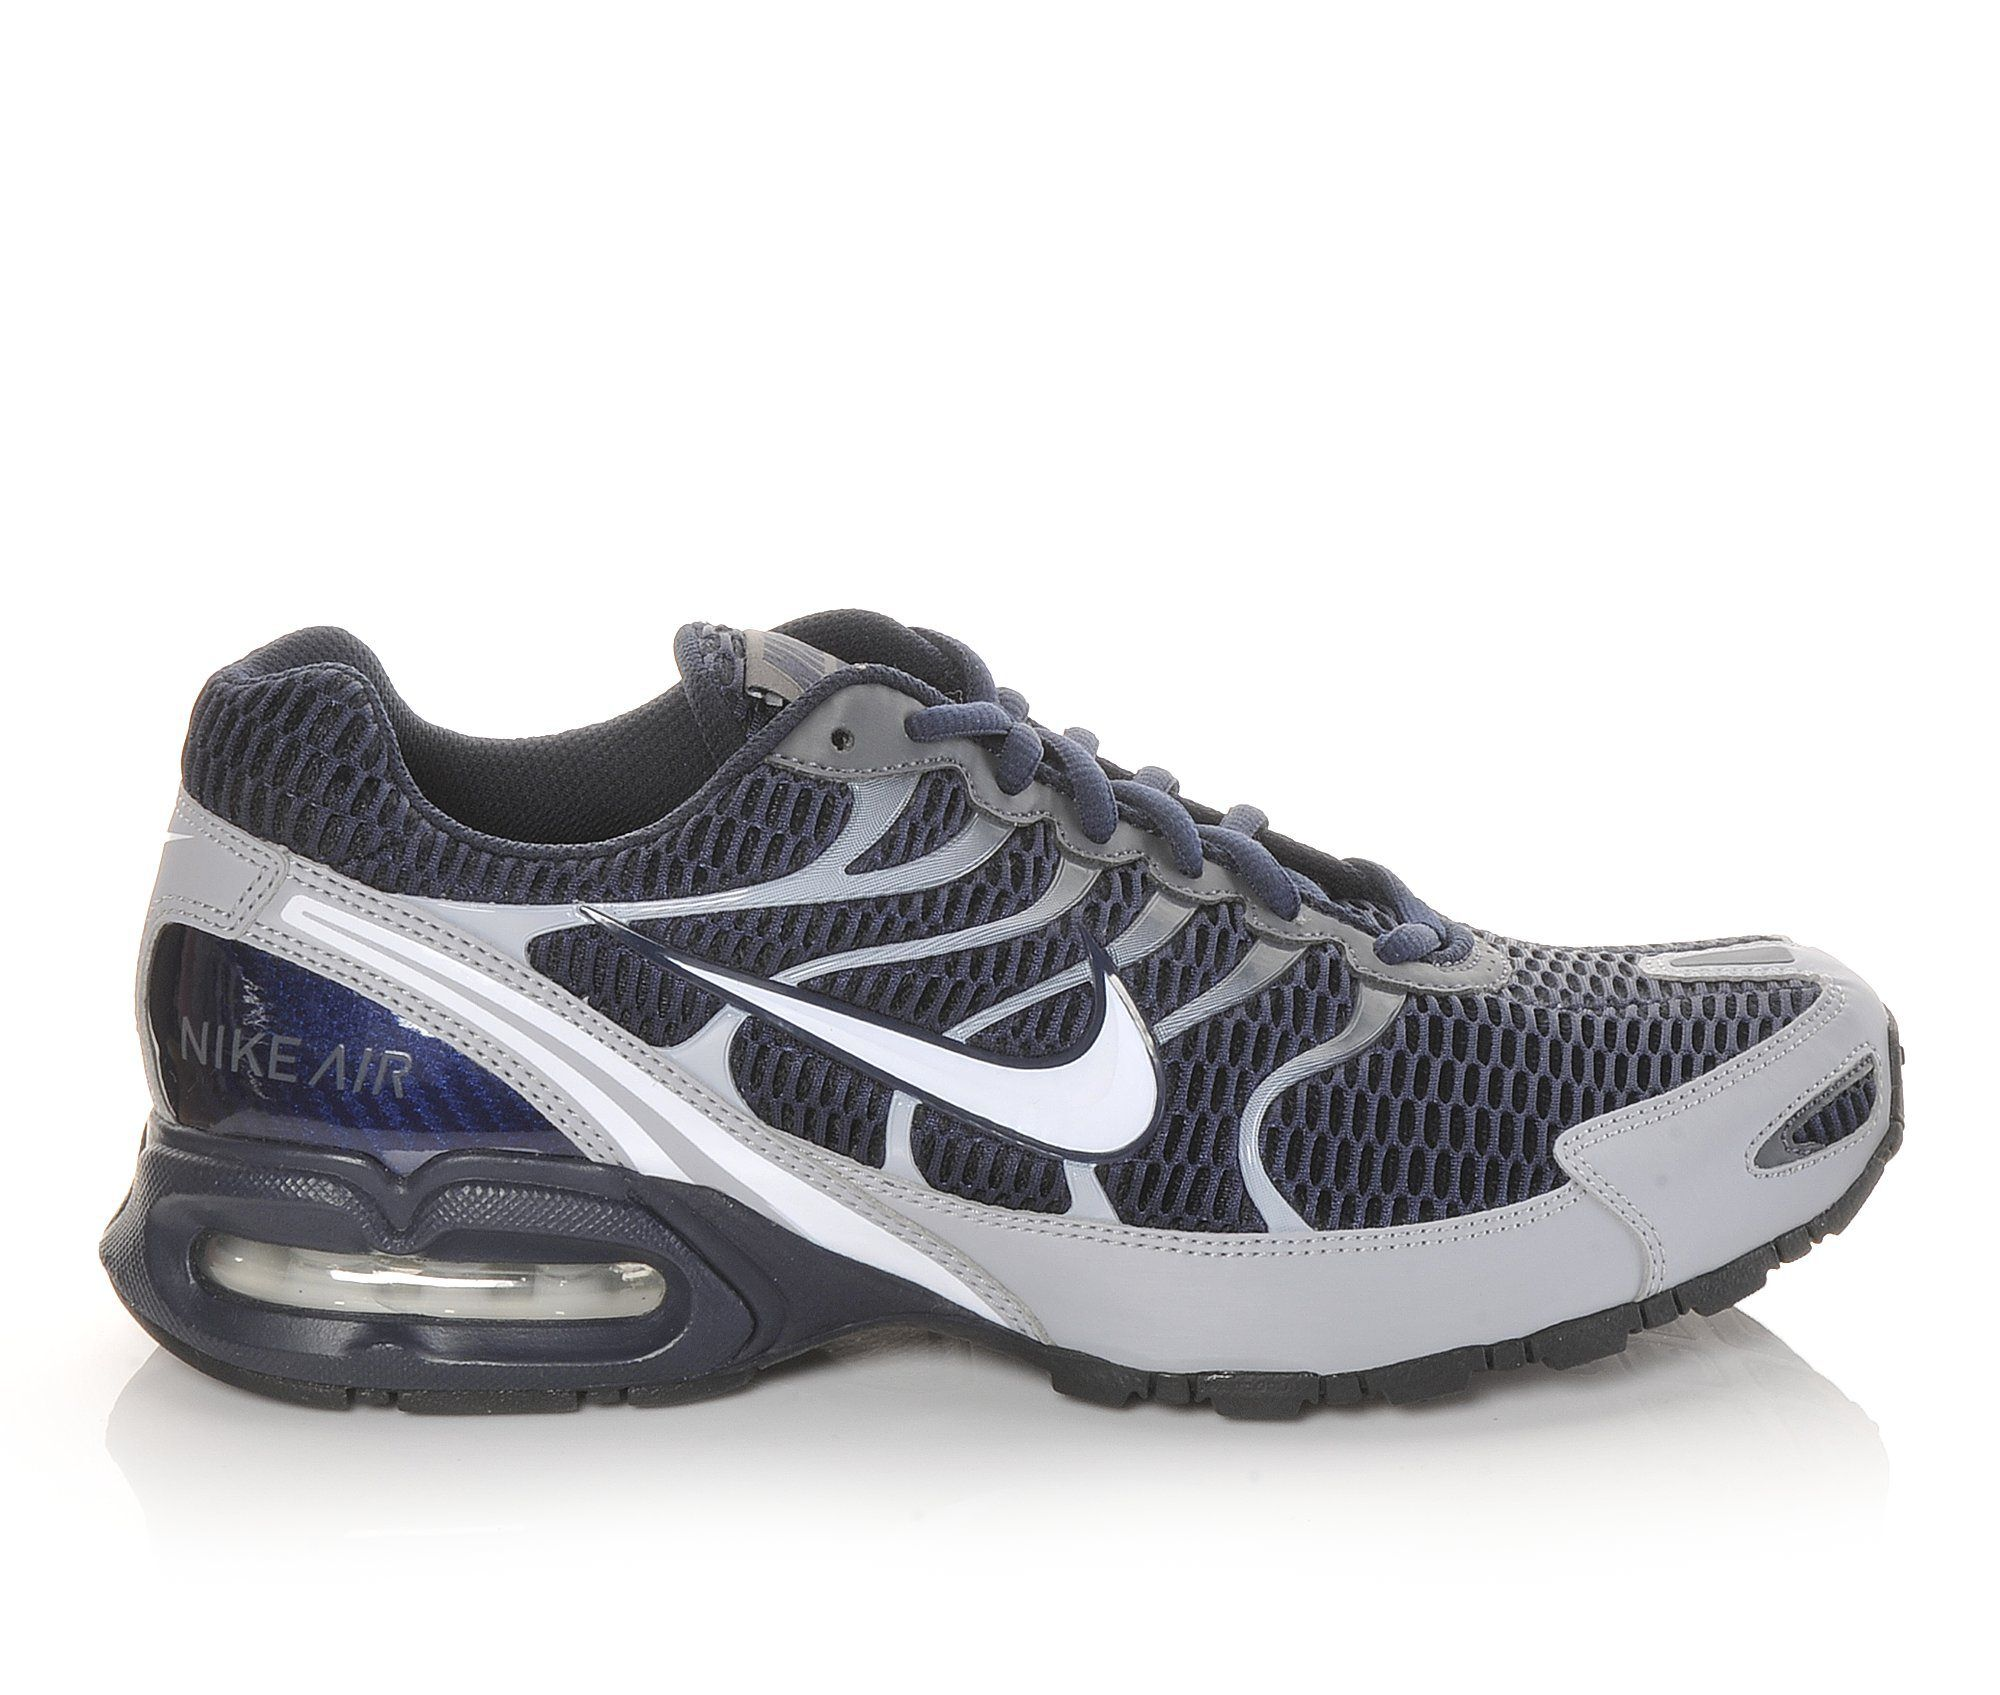 Images. Men's Nike Air Max Torch 4 Running Shoes